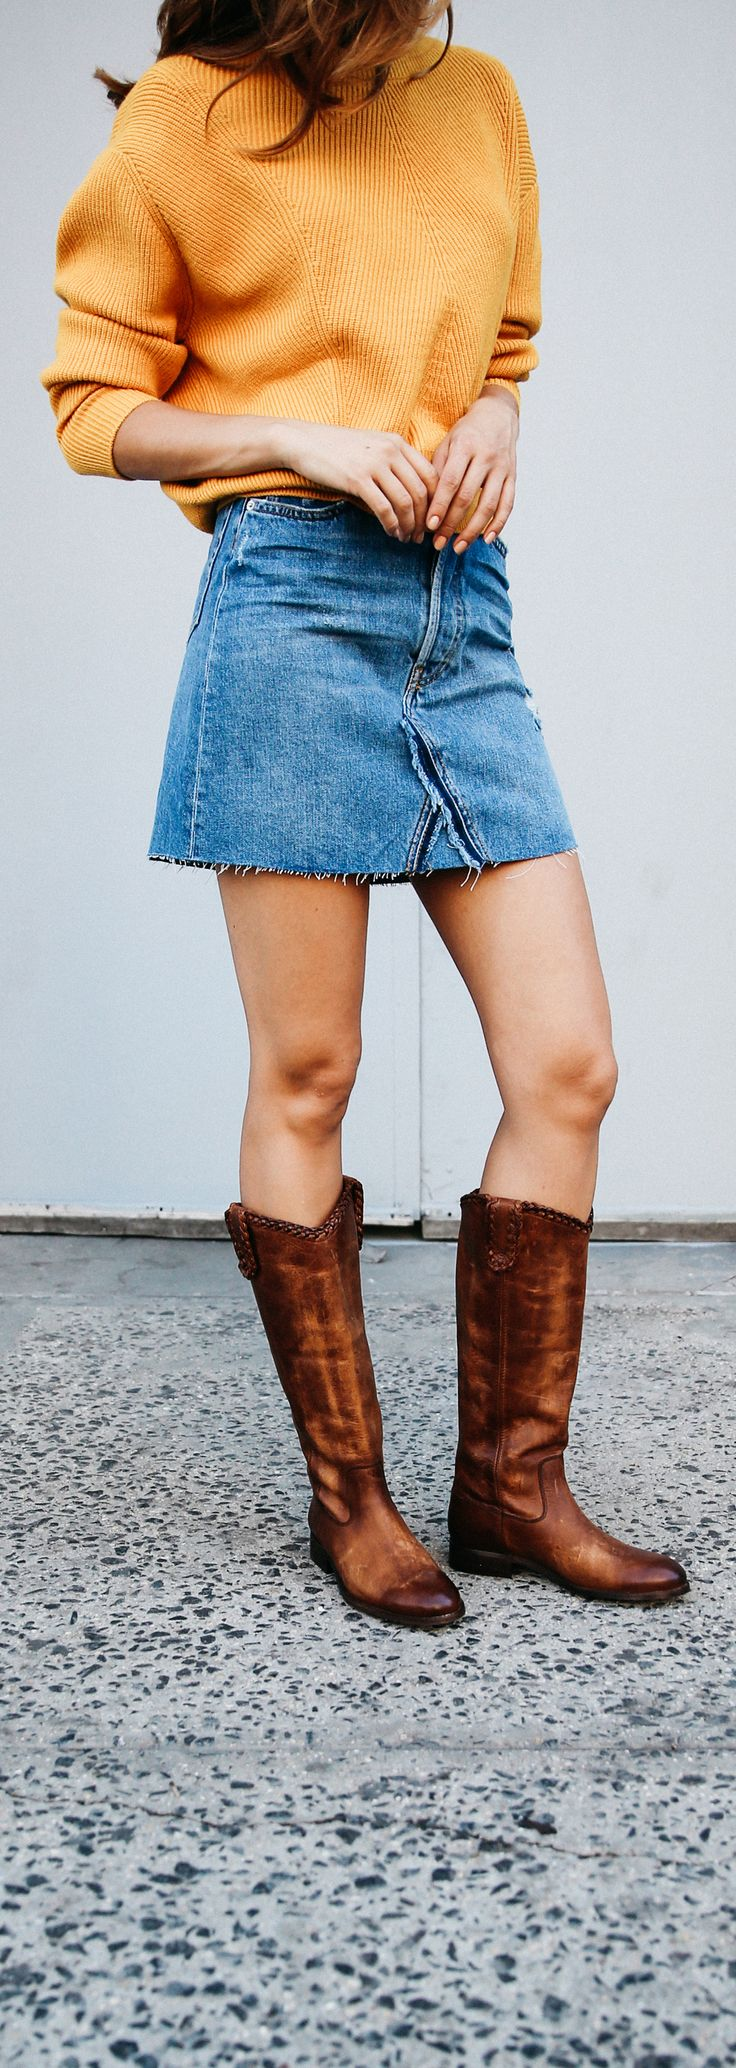 Melissa Whip Tall Boots   The Frye Company